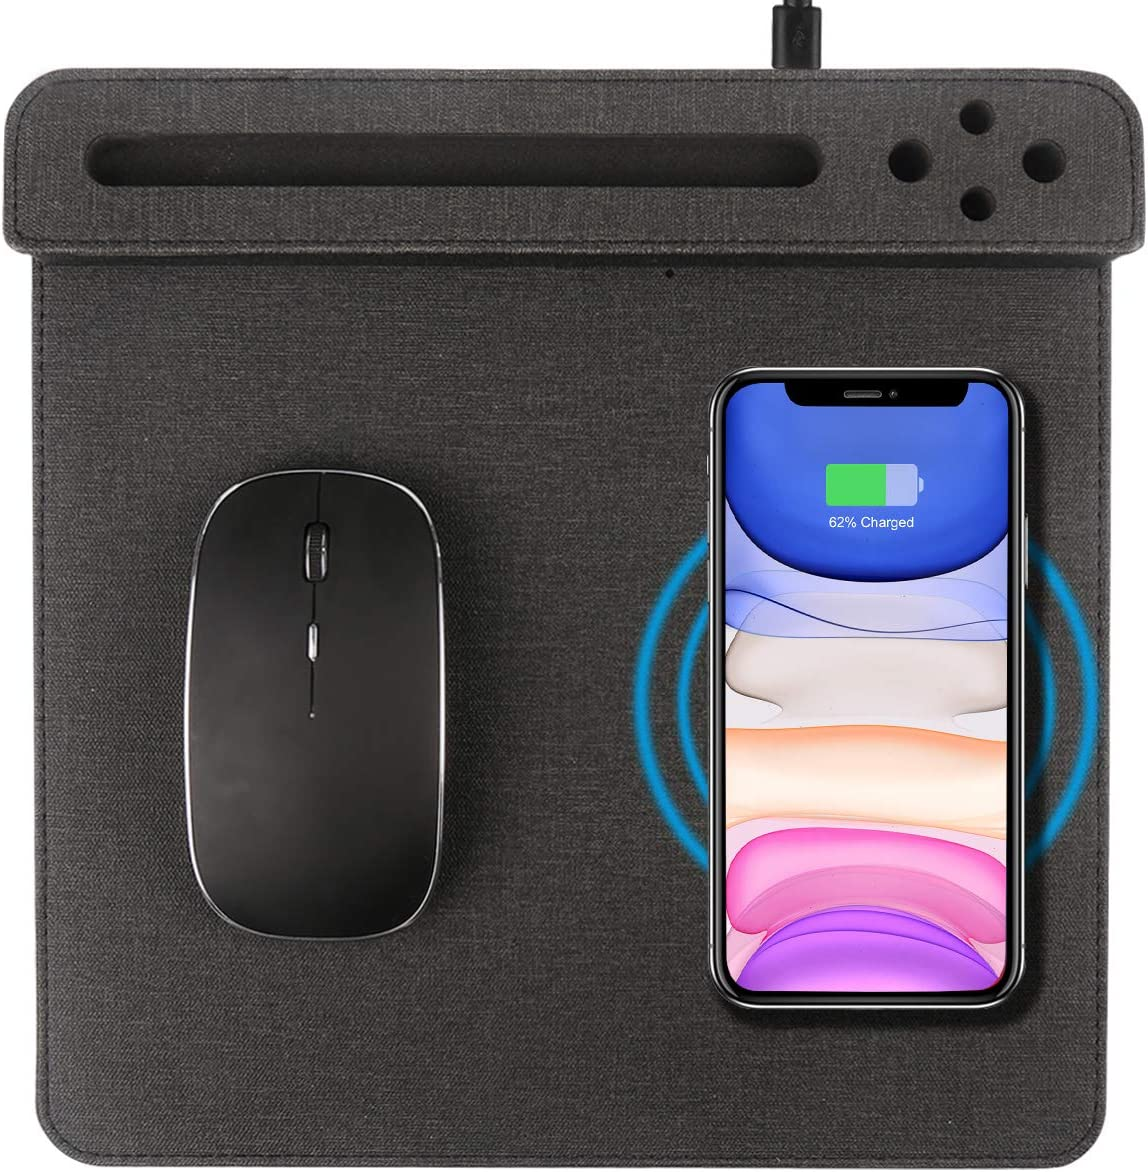 VHEONET San Antonio Mall Wireless Max 69% OFF Charger Mouse Charging 10W Pad QI